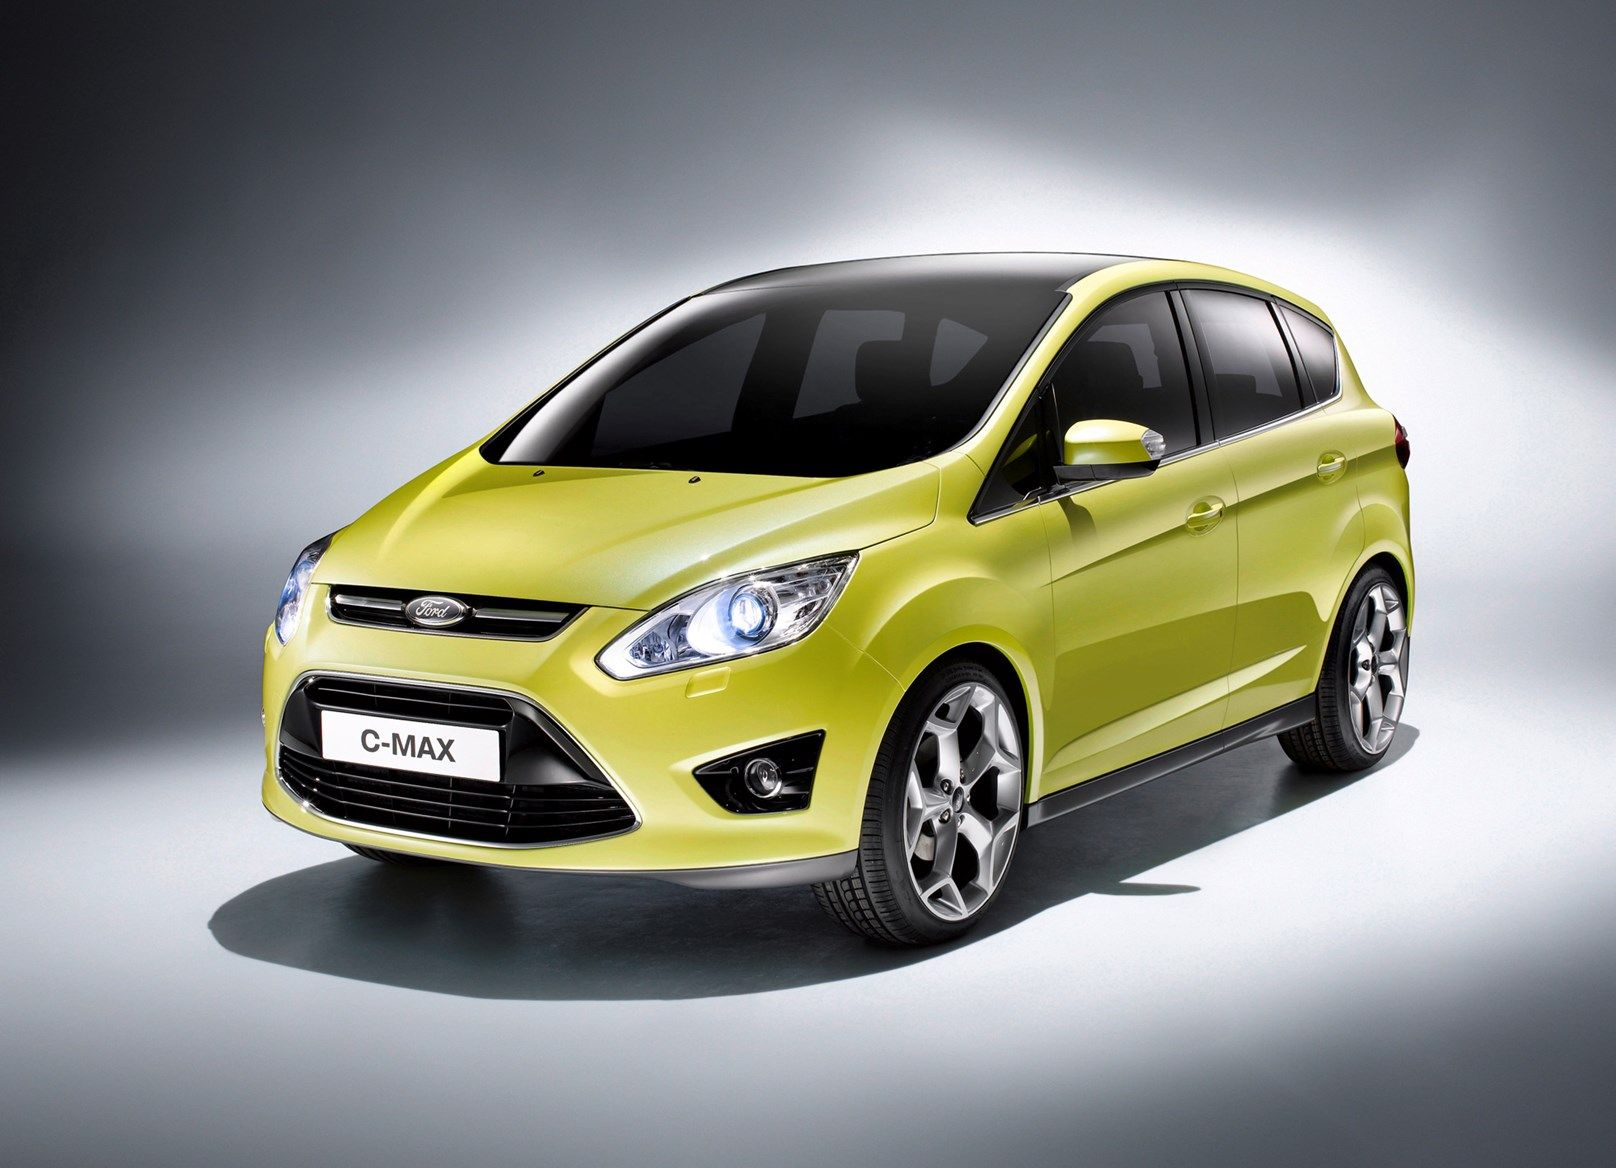 Pin By Recondition Engines On Ford Ford C Max Hybrid 2019 Ford Ford